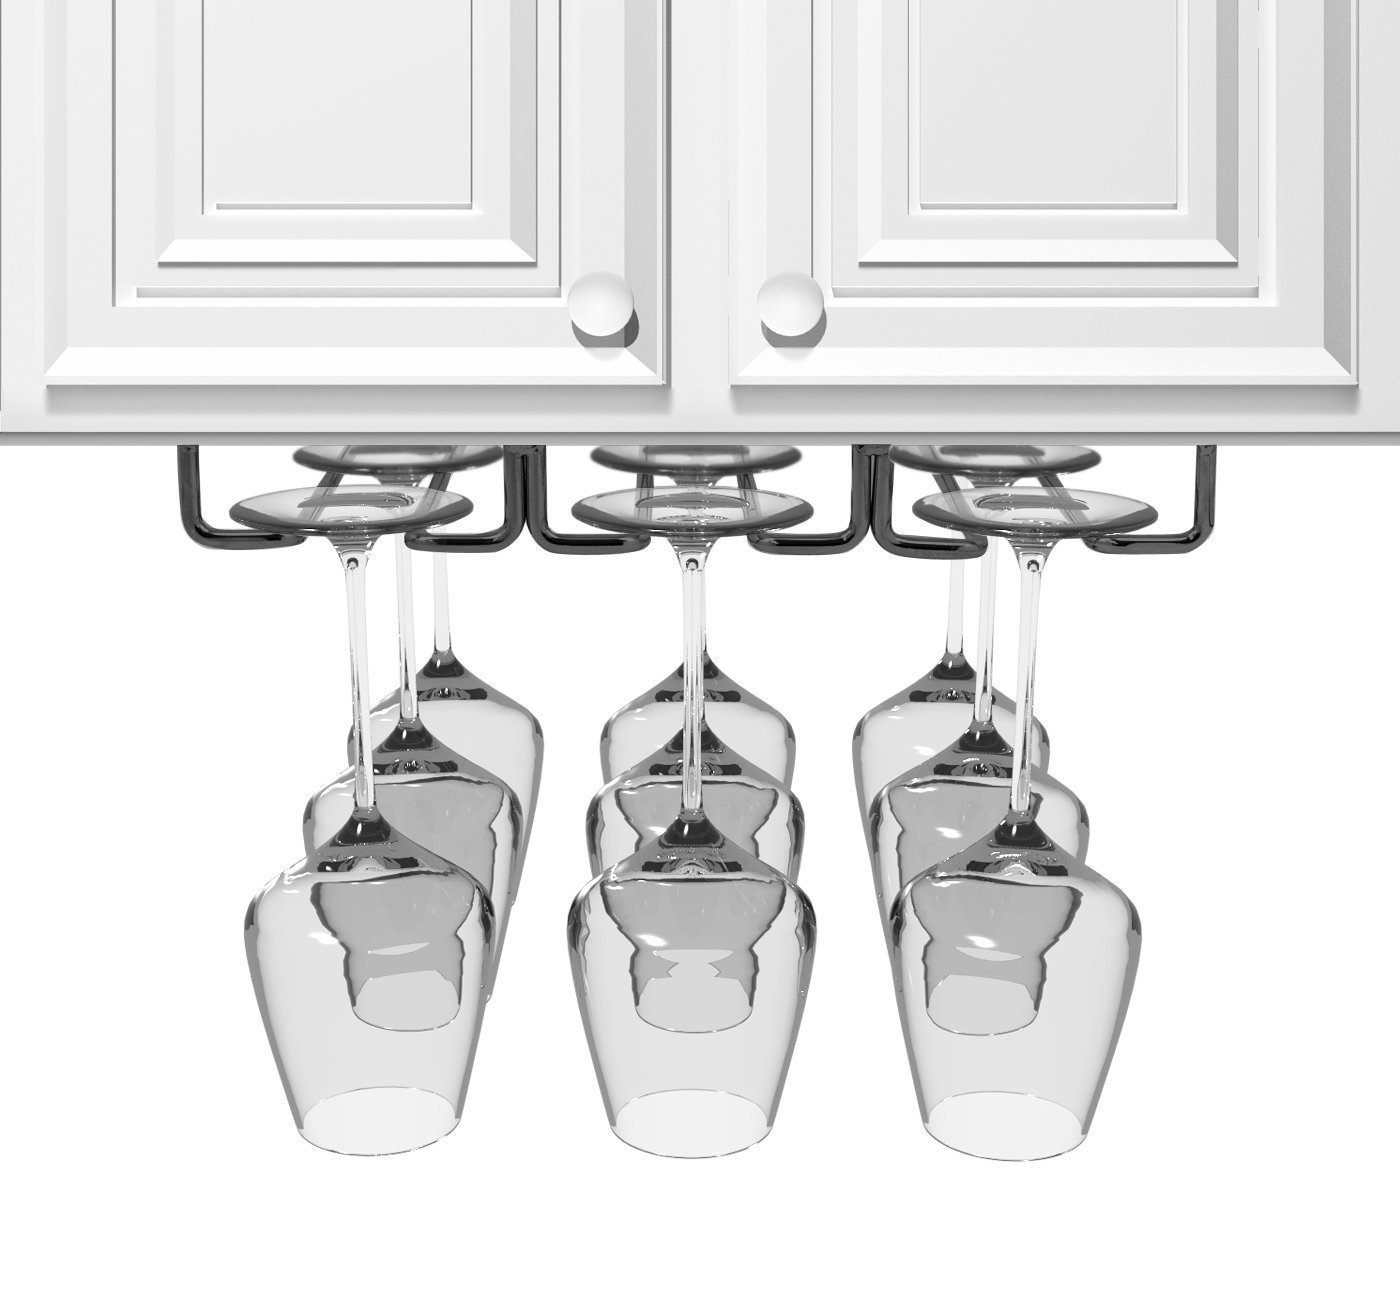 JMiles Under Cabinet Hanging Stemware Rack Hold Up To 9 Wine Glasses (Black) by J Miles CO